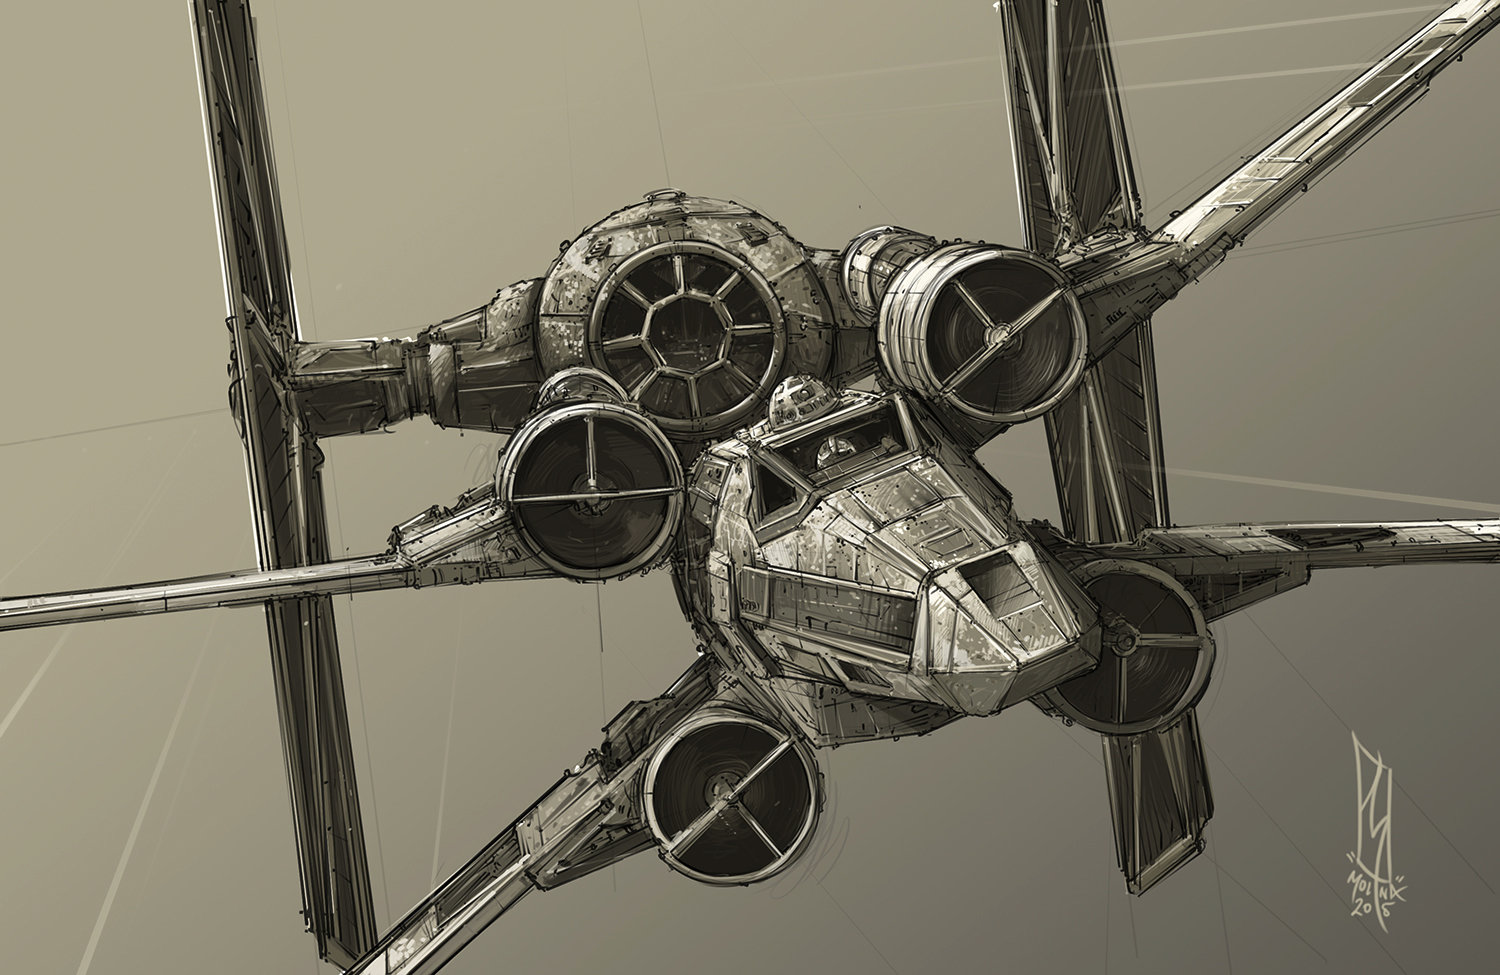 1500x975 Star Wars Imperial Tie Fighter Vs T 65 Incom X Wing By Shane